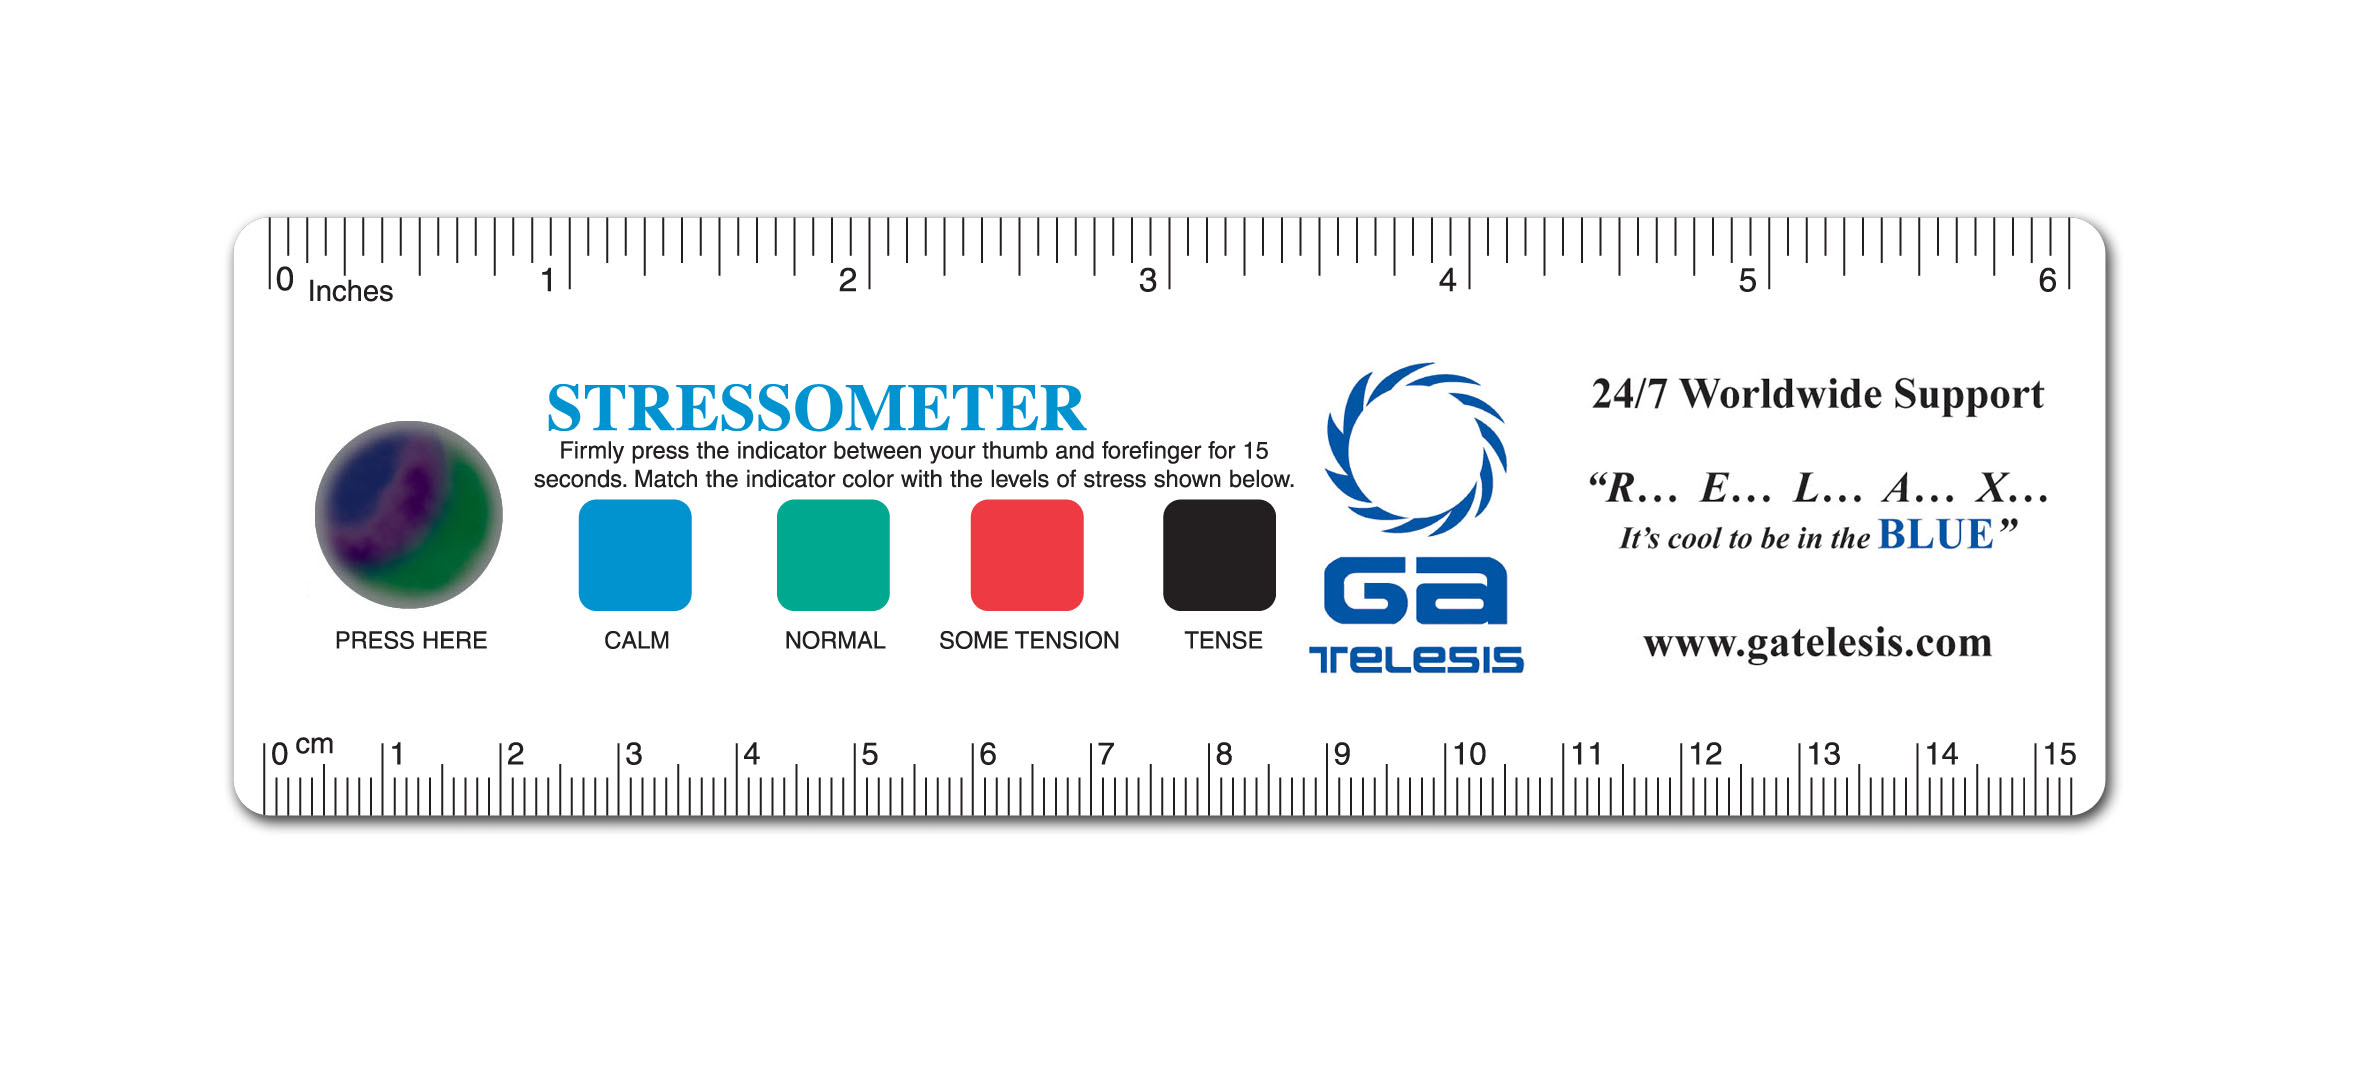 6 Inch Stress Ruler, Large, w/ Stress Crystal